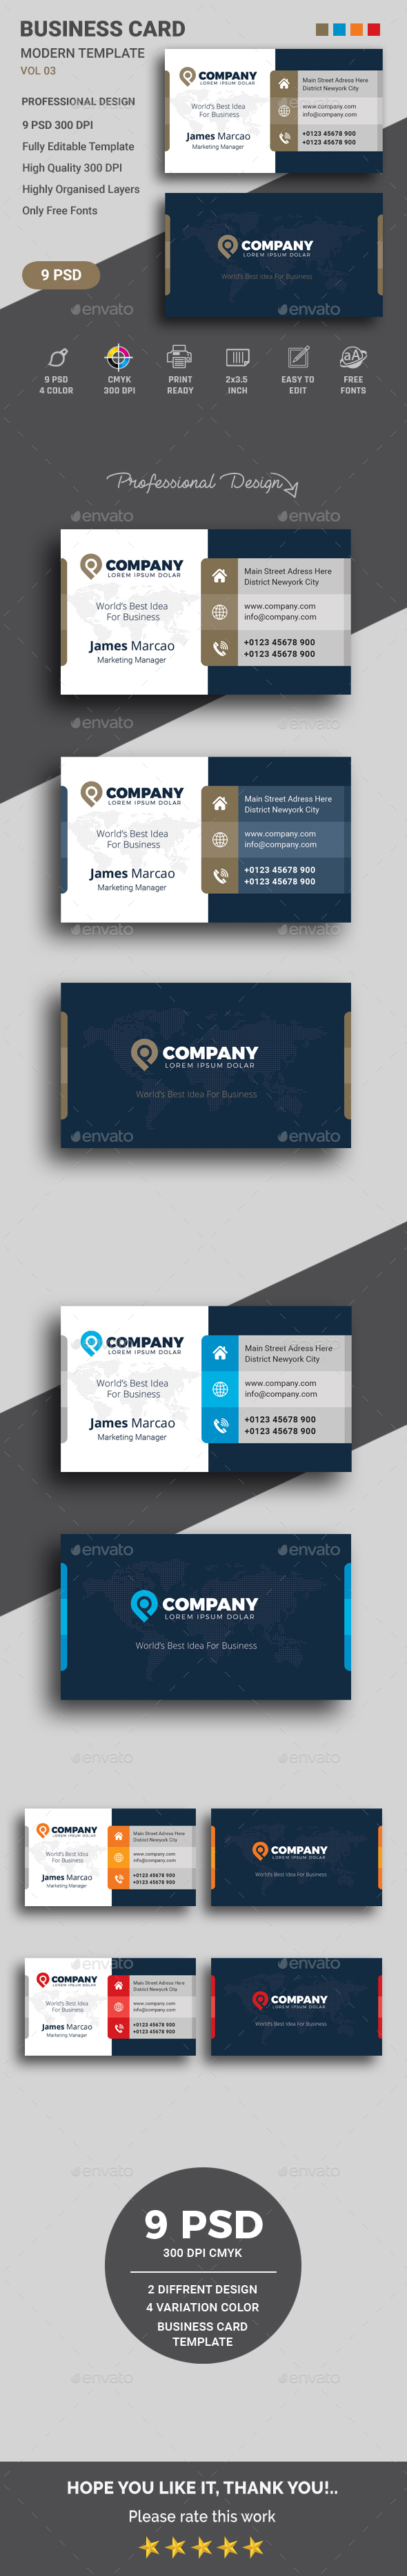 Business Card Templates Designs From Graphicriver